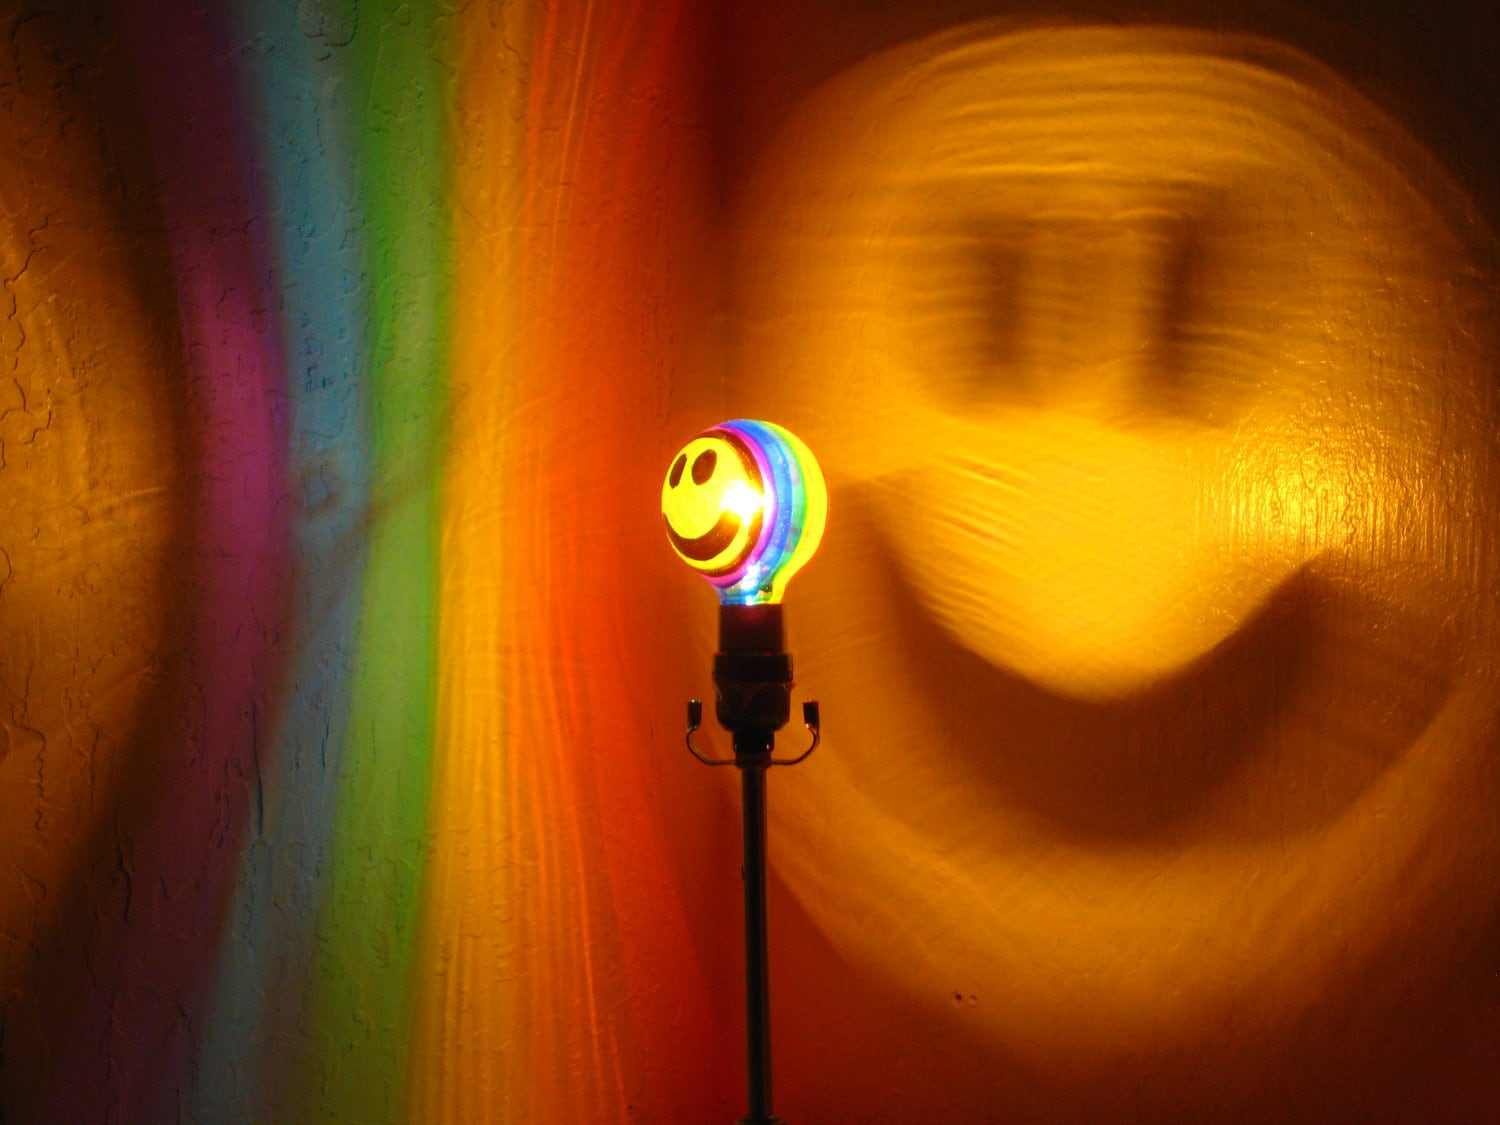 Rainbow Happy Smiley Face Painted Projection MoodLight for Painted Light Bulb Art  173lyp